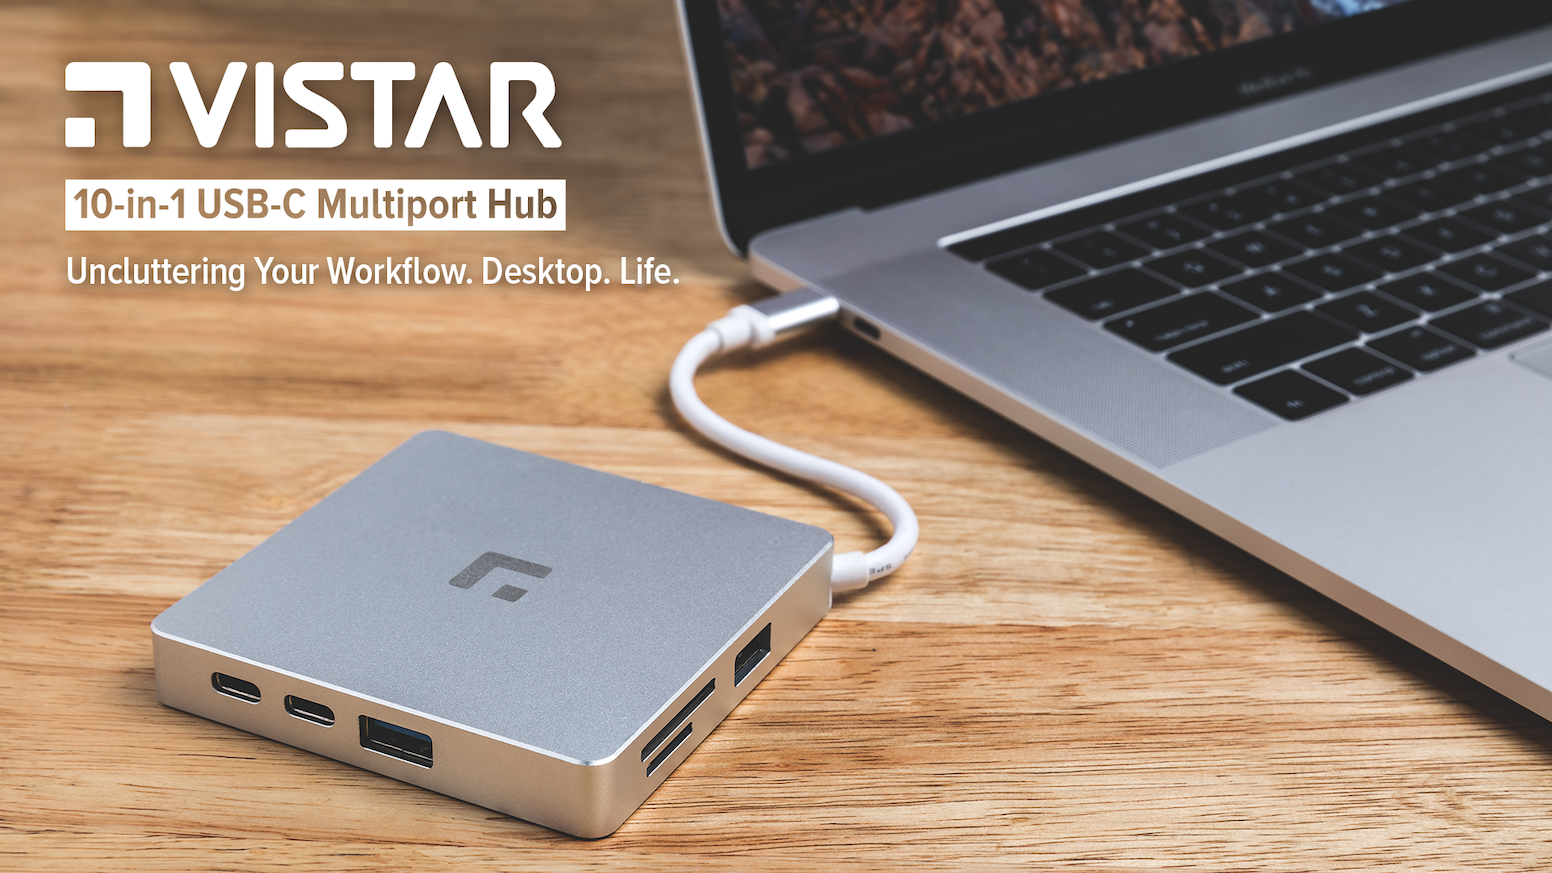 Reconnect your devices to your new USB-C equipped Mac/Windows laptop. Add ten ports with just one USB-C cable. Versatile. Robust. Safe.